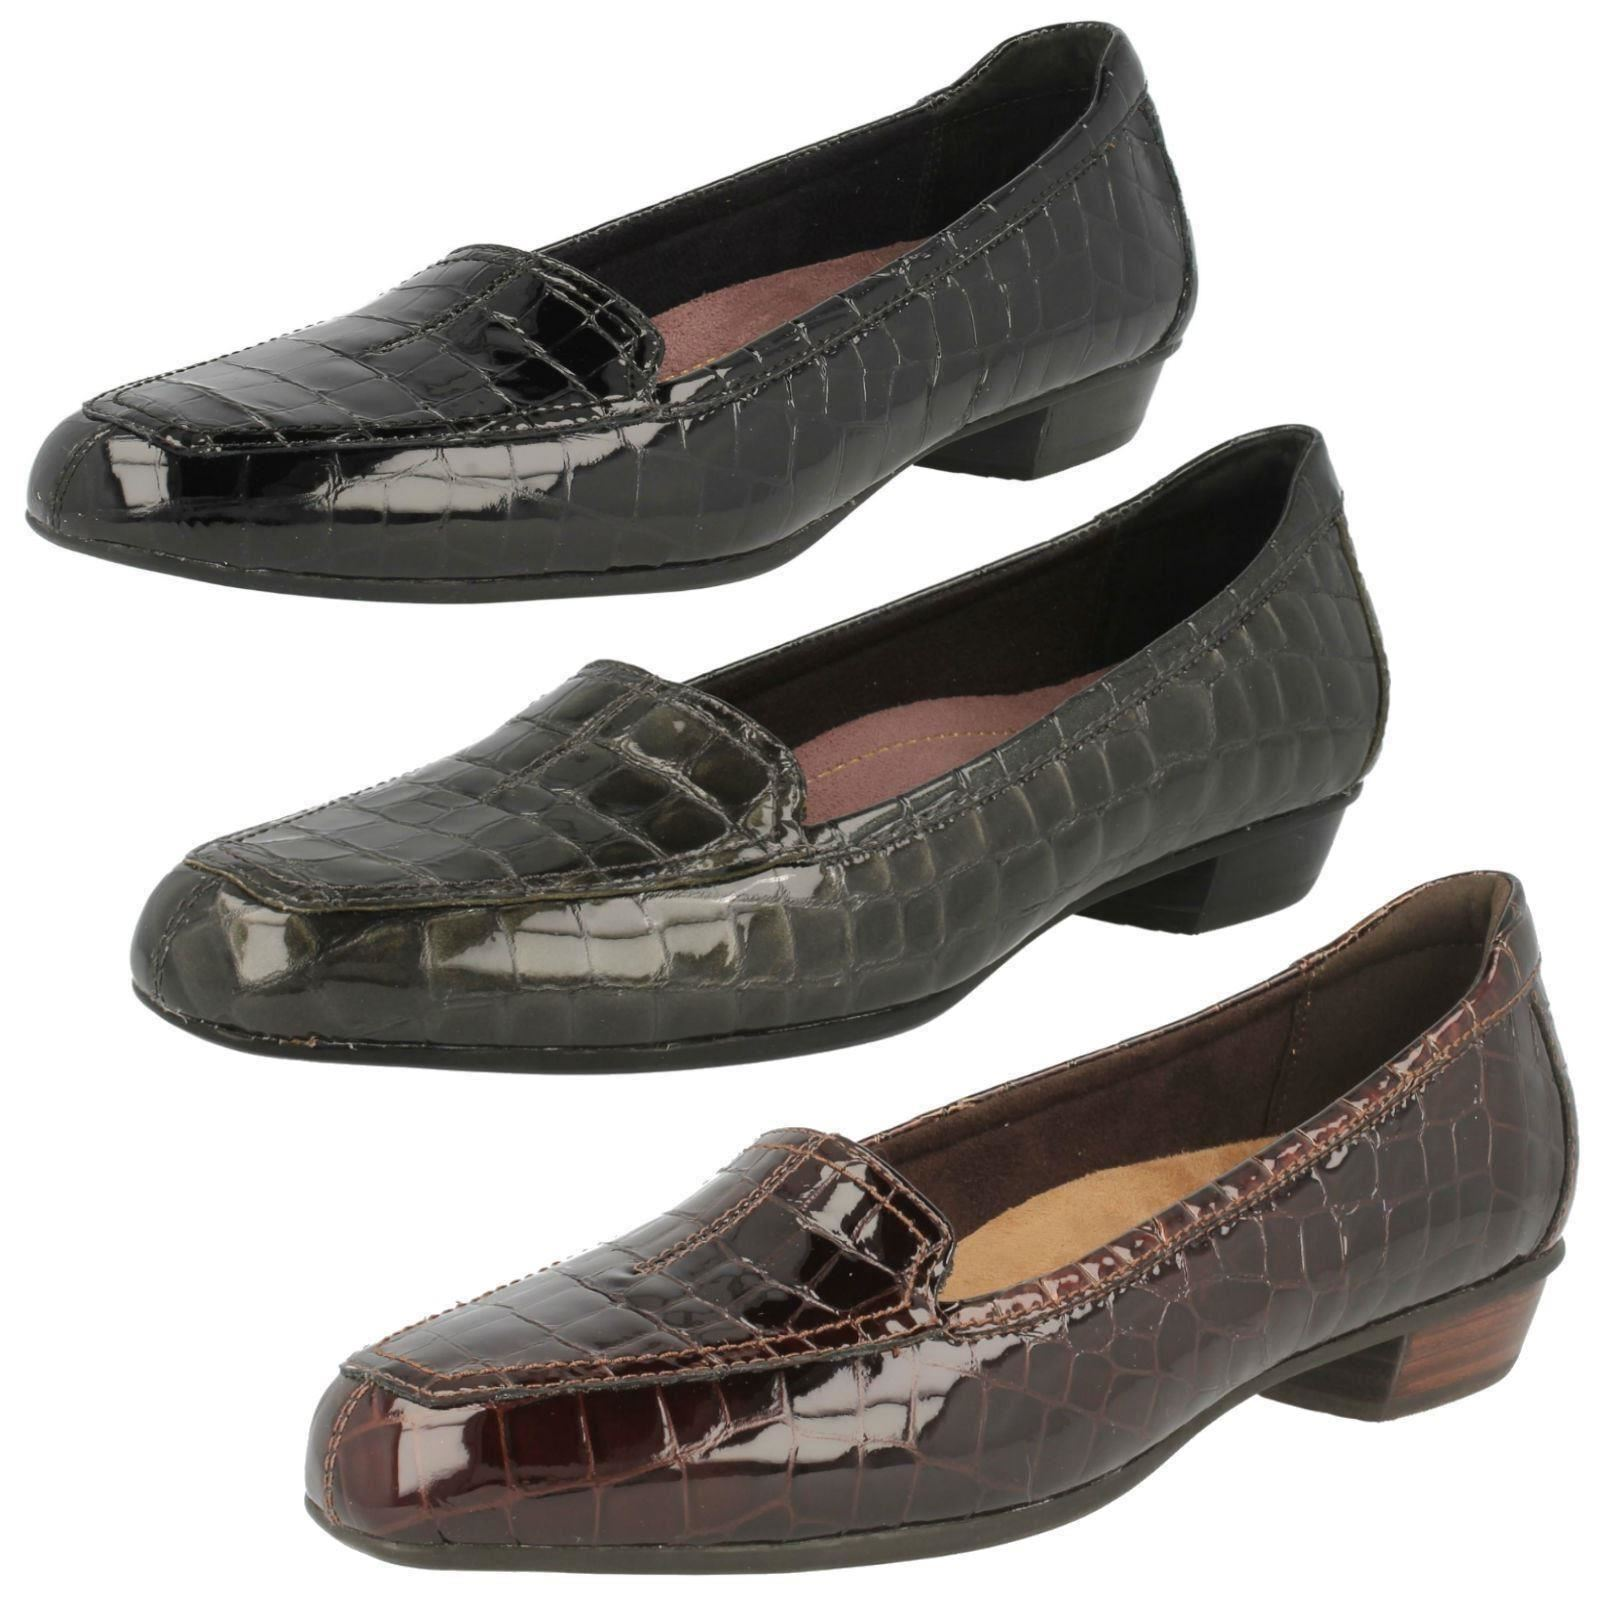 LADIES CLARKS PATENT CROC CASUAL SLIP ON LOW HEEL LOAFERS SHOES CASWELL TIME